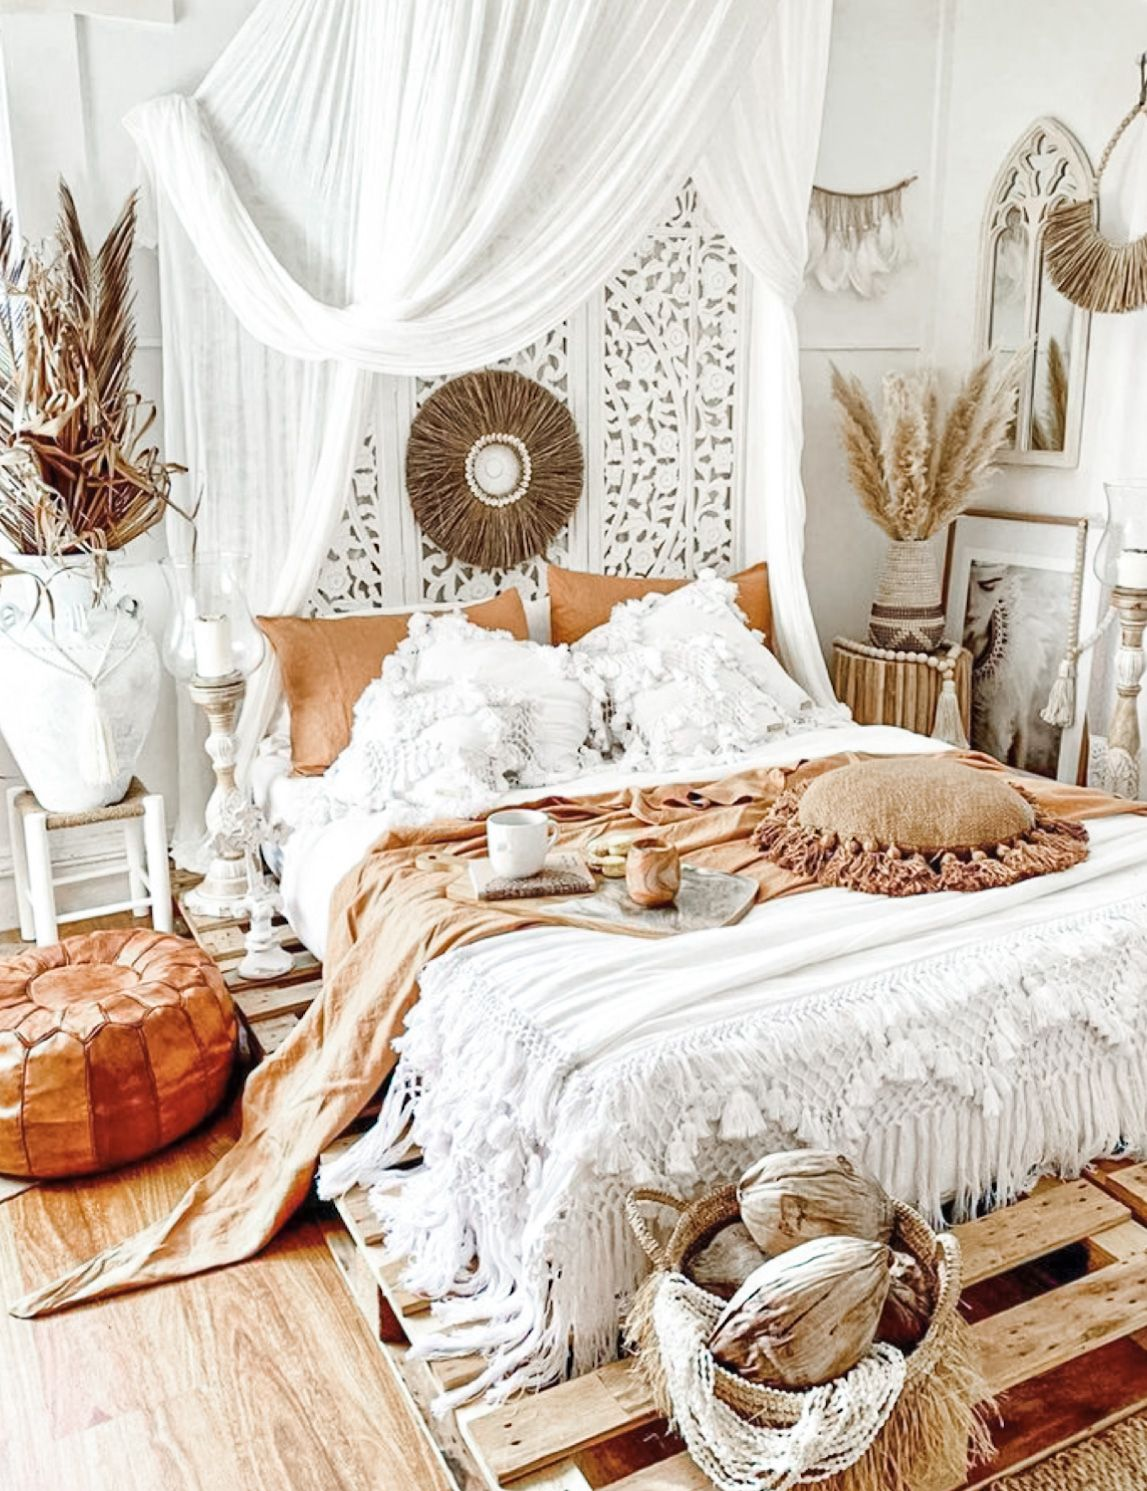 10 Style Tips for Your Boho Bedroom - DIY Darlin'